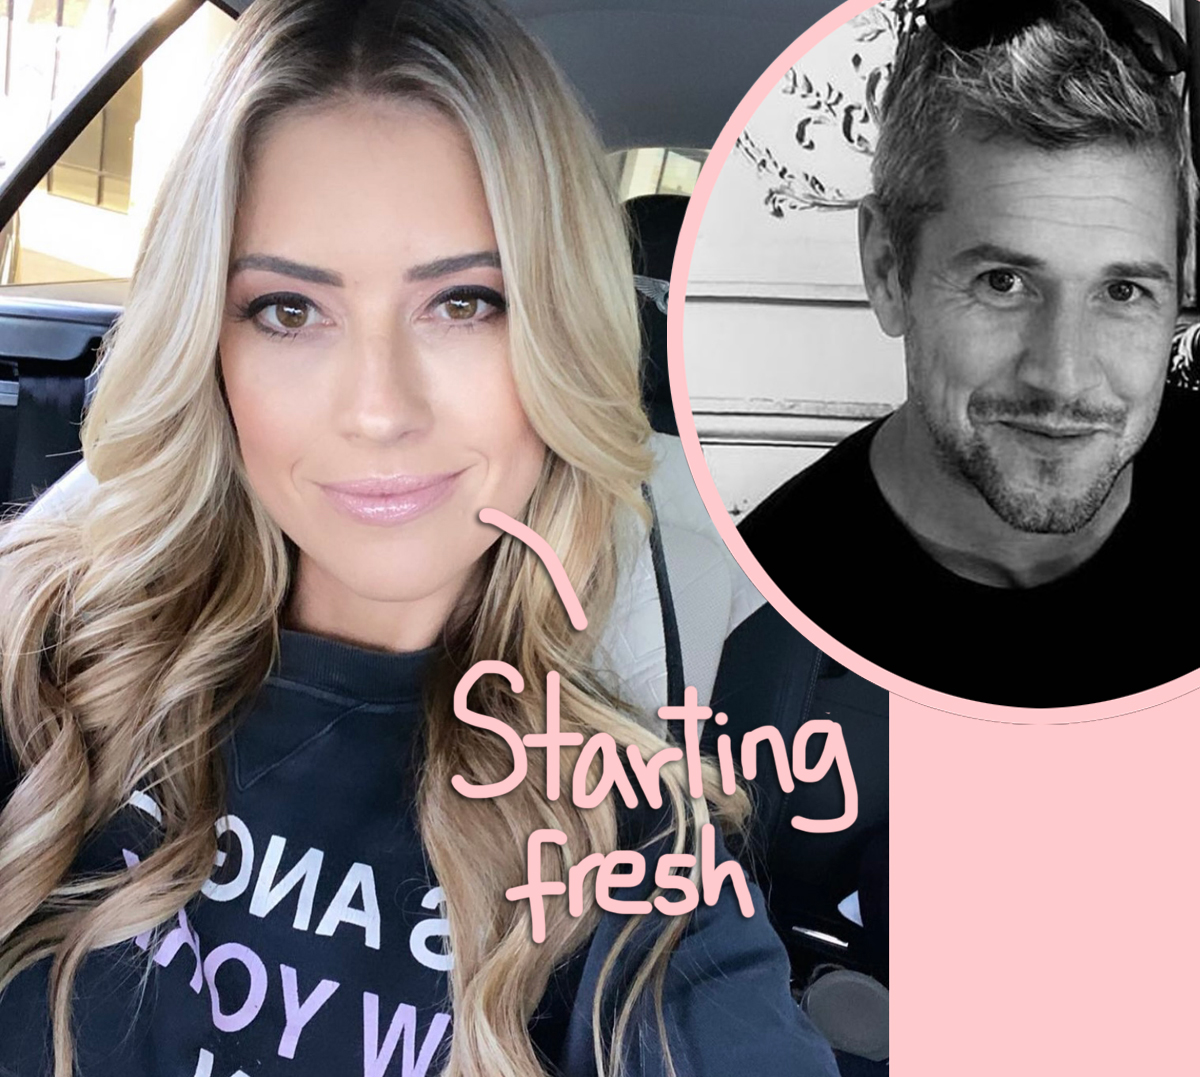 Christina Anstead Has Further Distanced Herself From Estranged Husband Ant Anstead Amid Their Divorce -- Look!